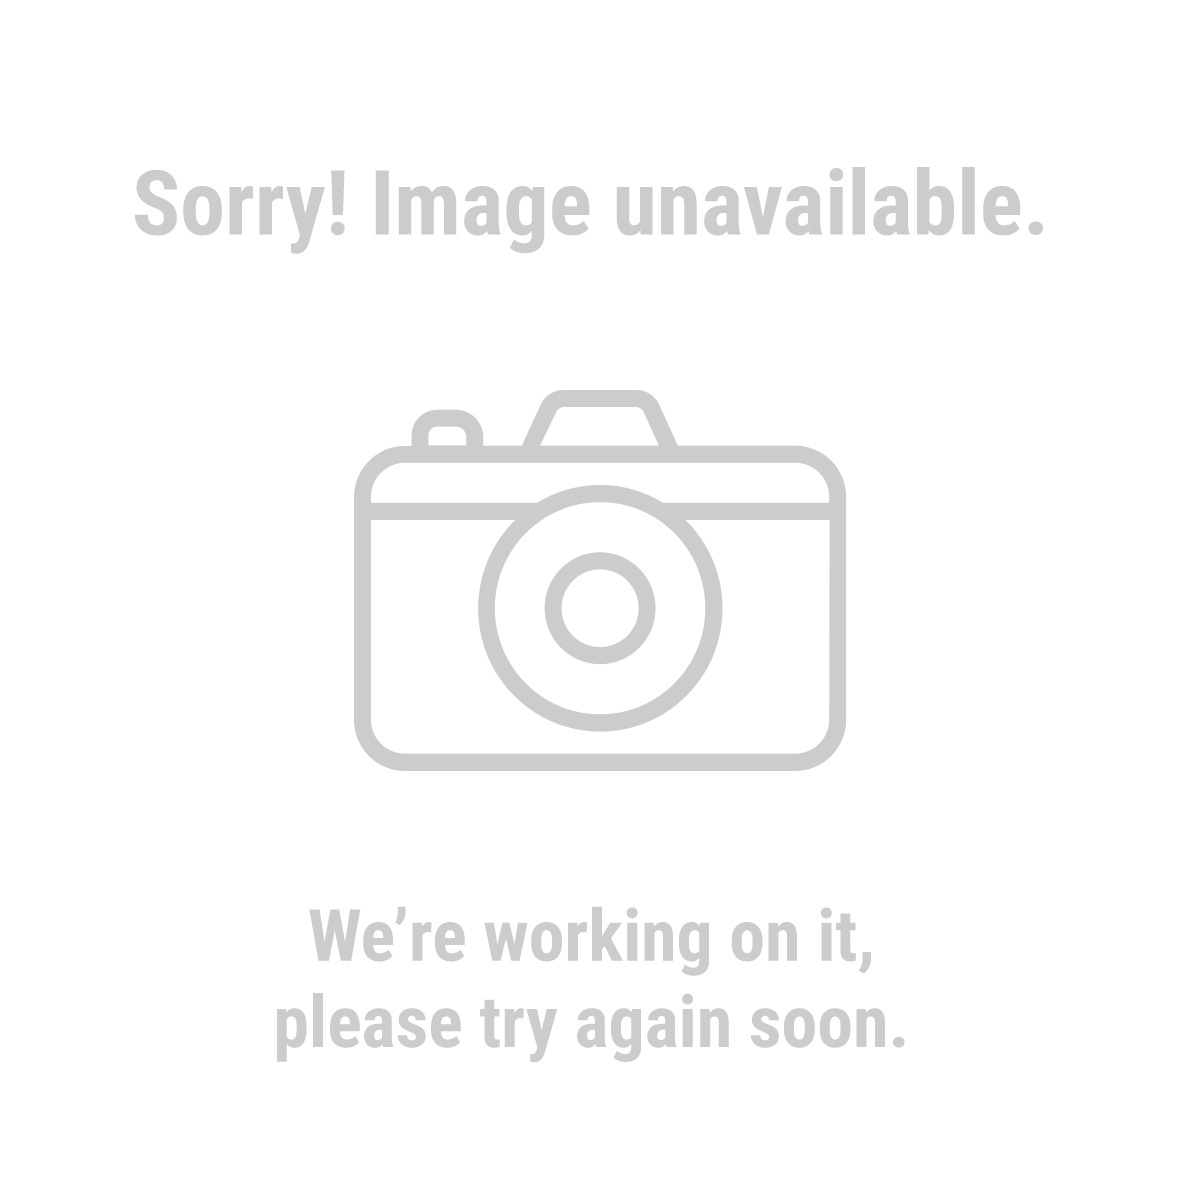 HFT 69116 7 ft. 11 in. x 9 ft. 11 in. Blue/Silver Reversible All Purpose/Weather Resistant Tarp